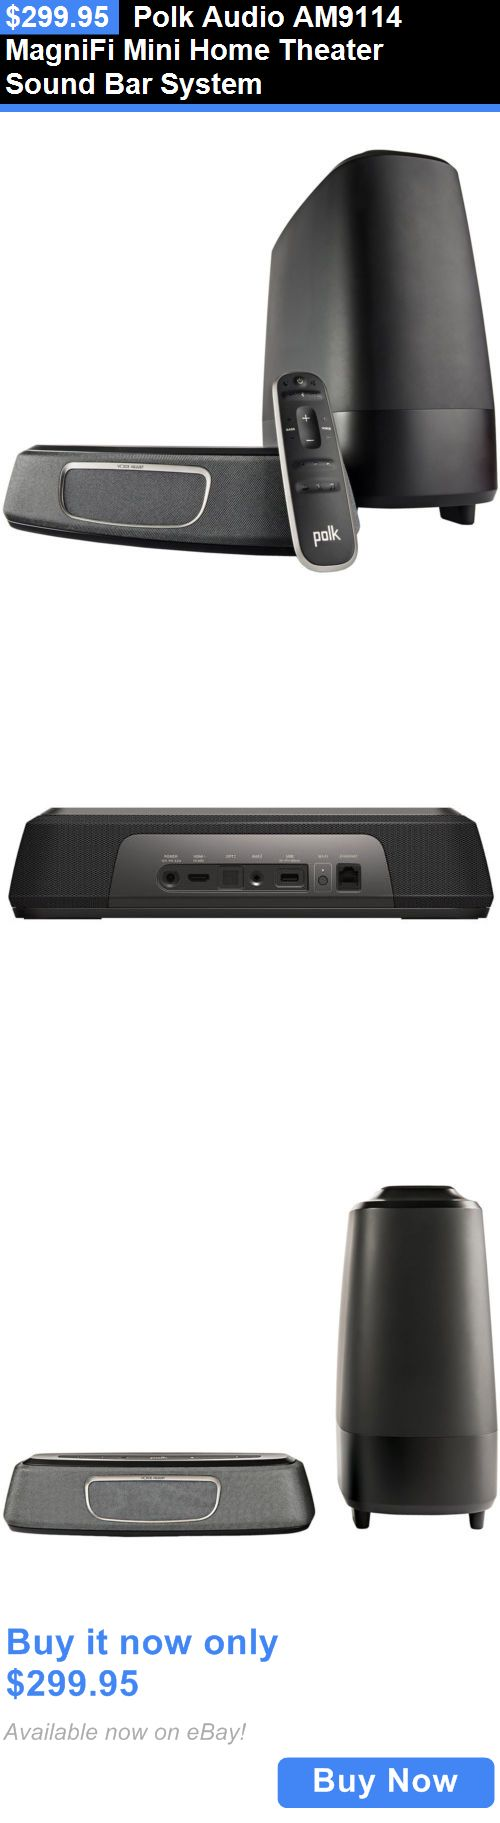 Home Theater Systems: Polk Audio Am9114 Magnifi Mini Home Theater Sound Bar System BUY IT NOW ONLY: $299.95